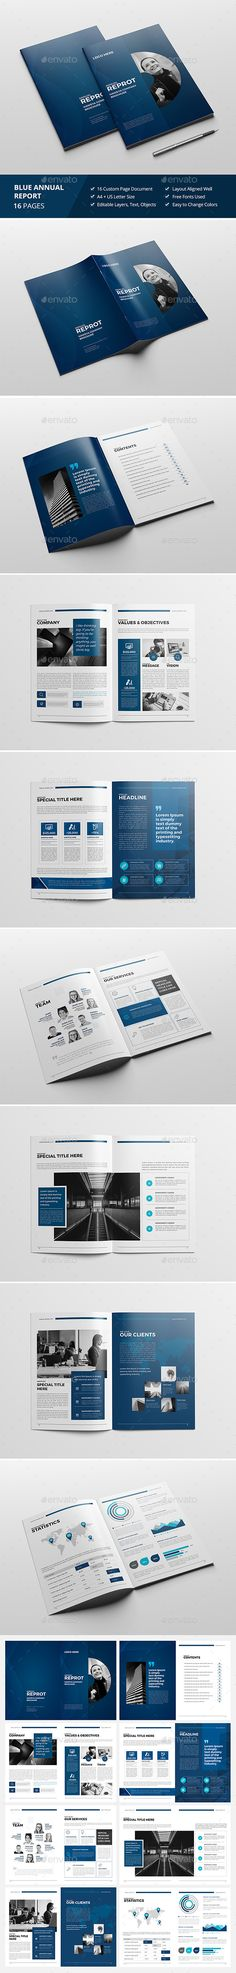 Modern And Professional Proposal Template Indesign Indd  Proposal